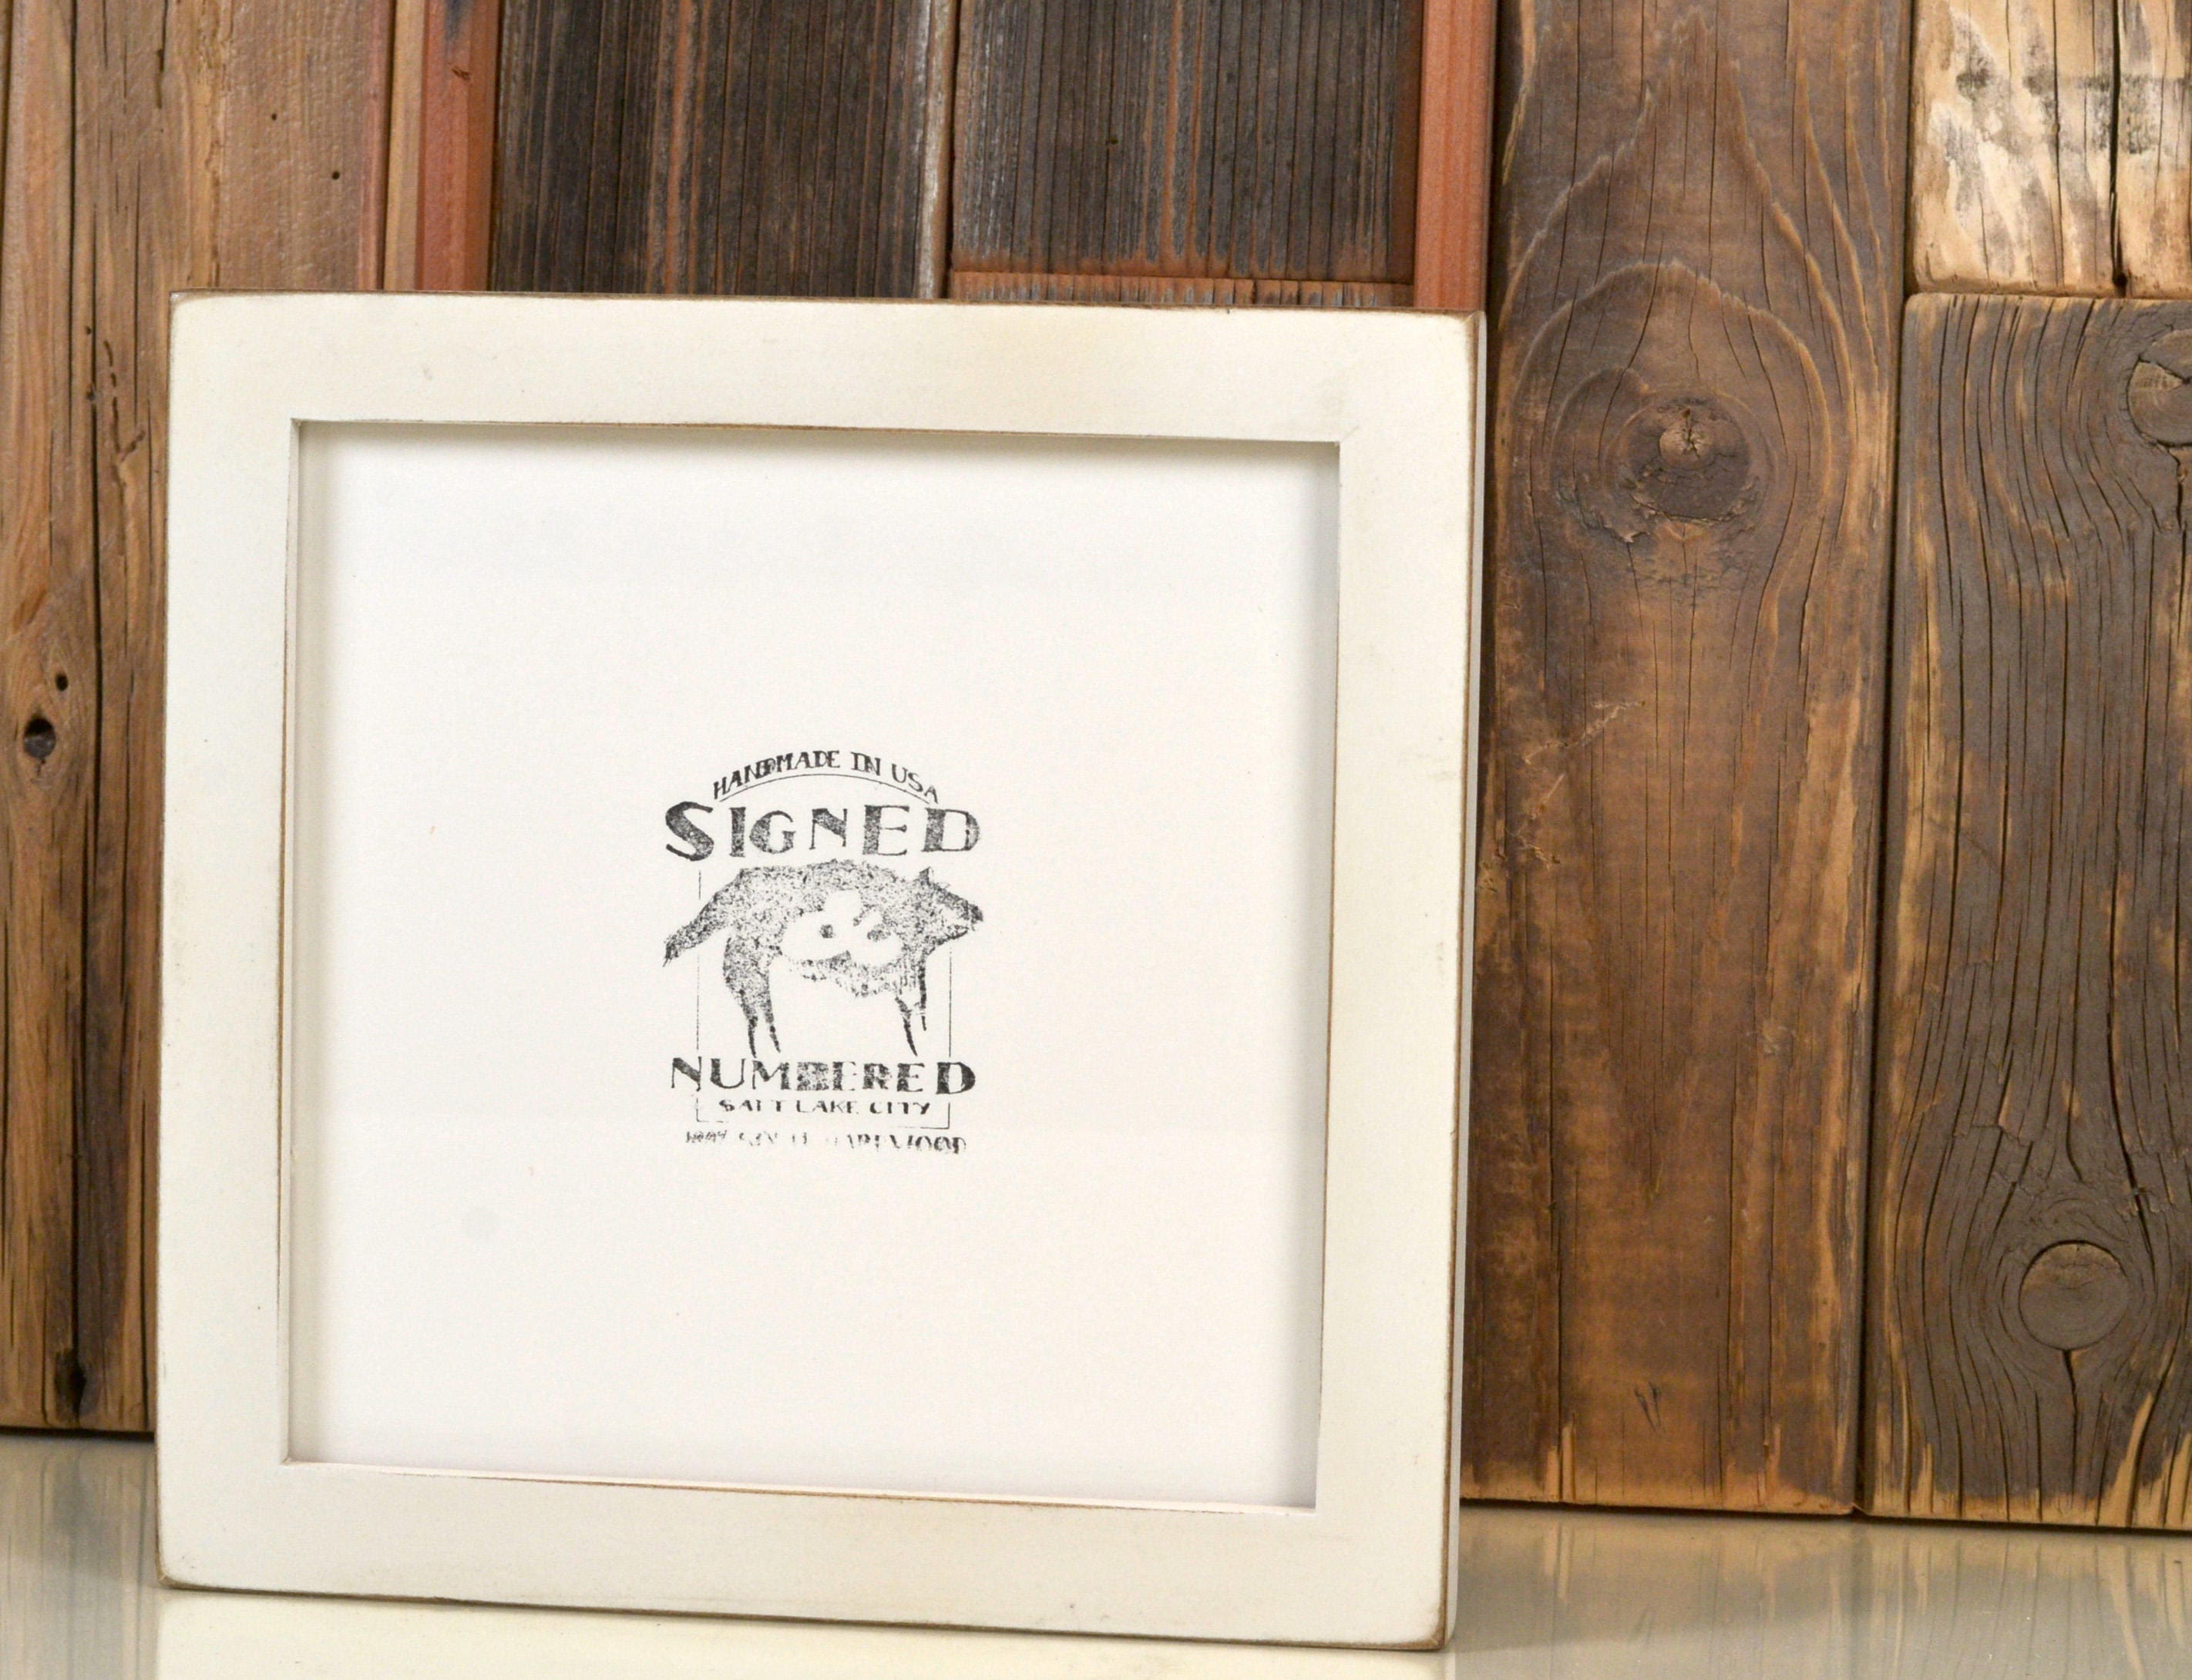 8x8 Square Picture Frame in 1x1 Flat Style with Vintage White Finish ...